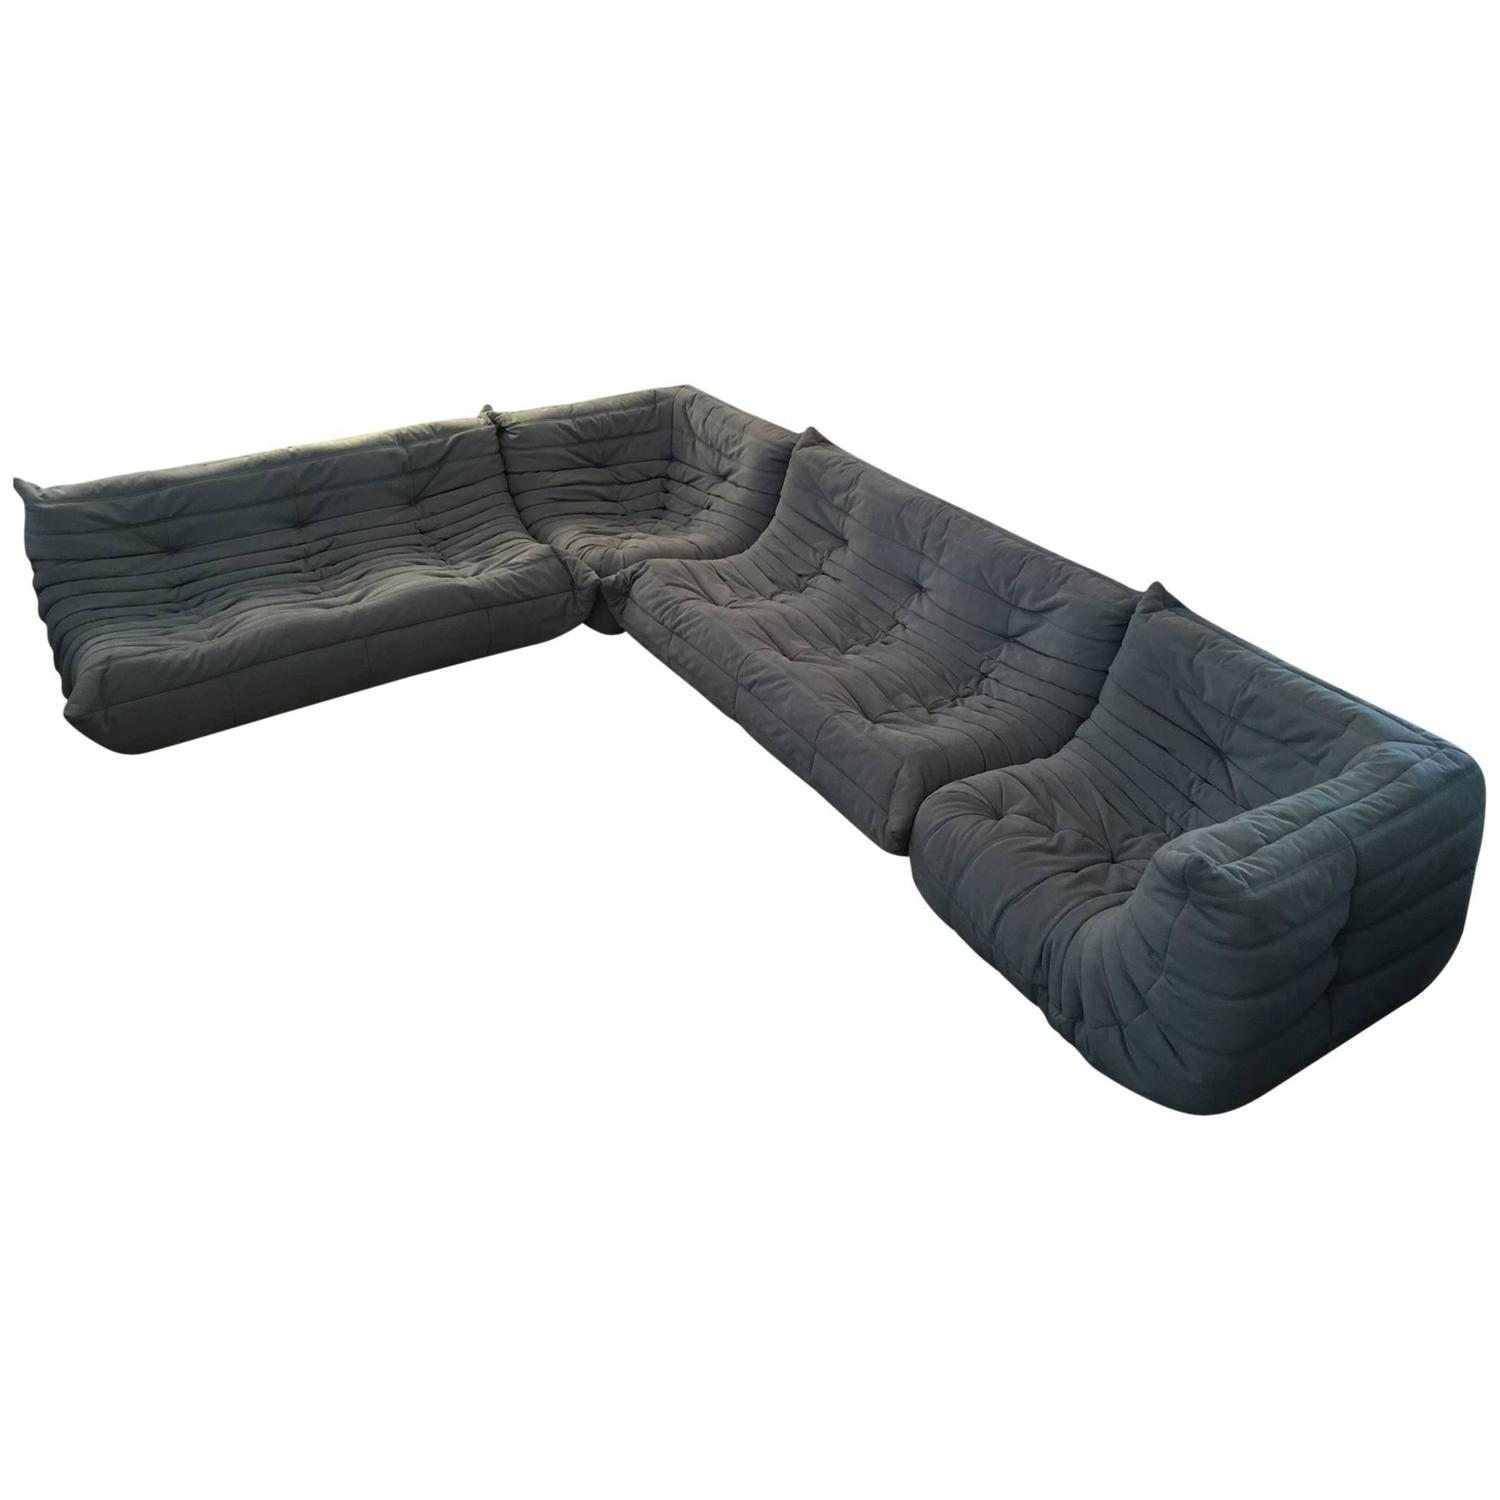 original 1980s ligne roset five pieces sofas designed by michel ducaroy for sale at 1stdibs